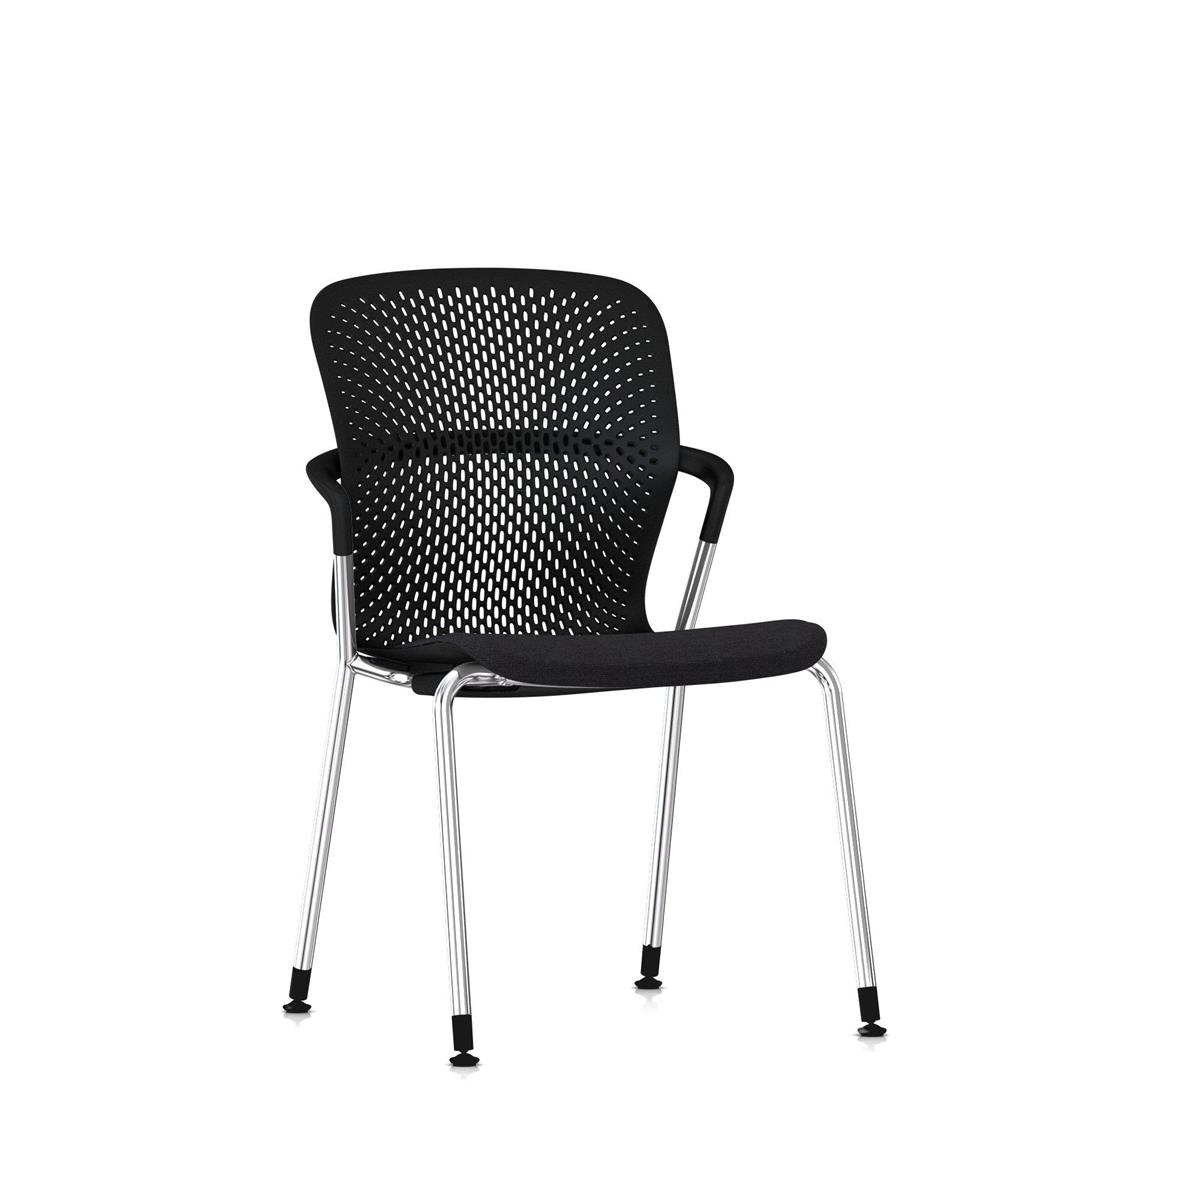 Keyn 4 Leg Chair Chrome & Black - Camira Sprint tekstil og glidere